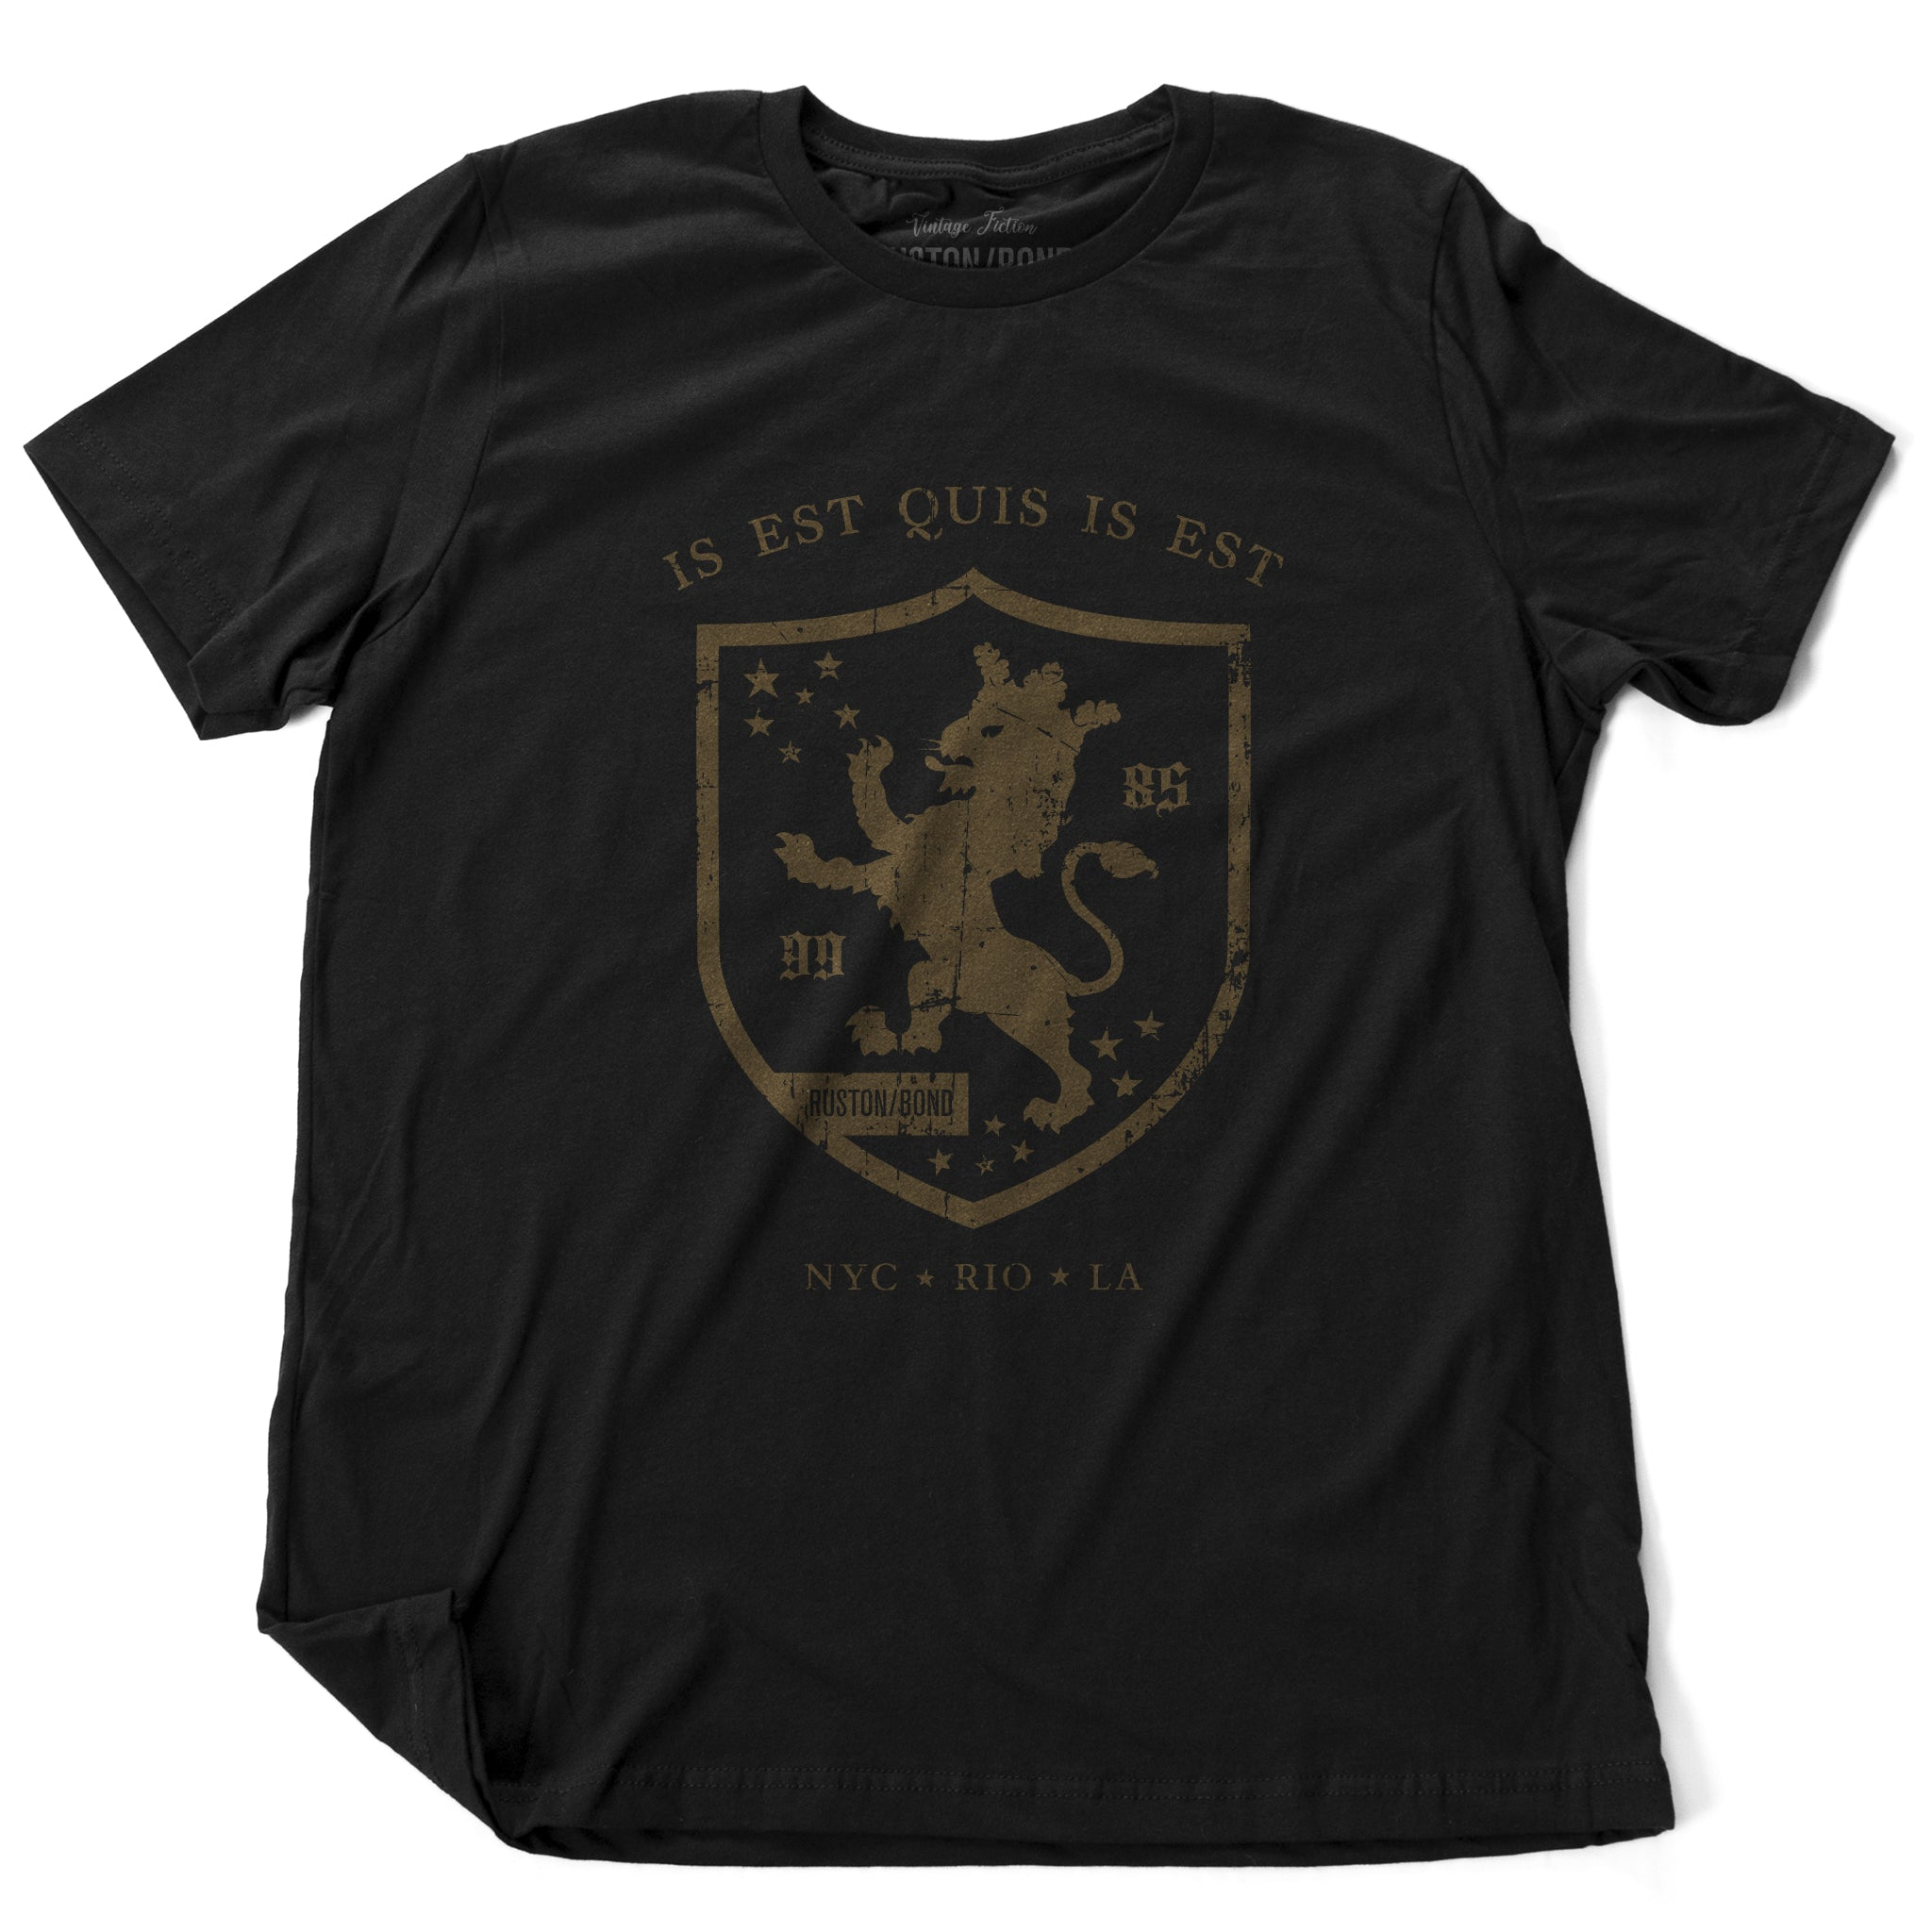 "A retro, vintage-inspired fashion t-shirt in Classic Black, with an medieval graphic of a lion within a shield,surrounded by the sarcastic text in Latin ""it is what it is,"" and New York, Rio, Los Angeles at the bottom. By fashion brand Ruston/Bond, from wolfsaint.net"